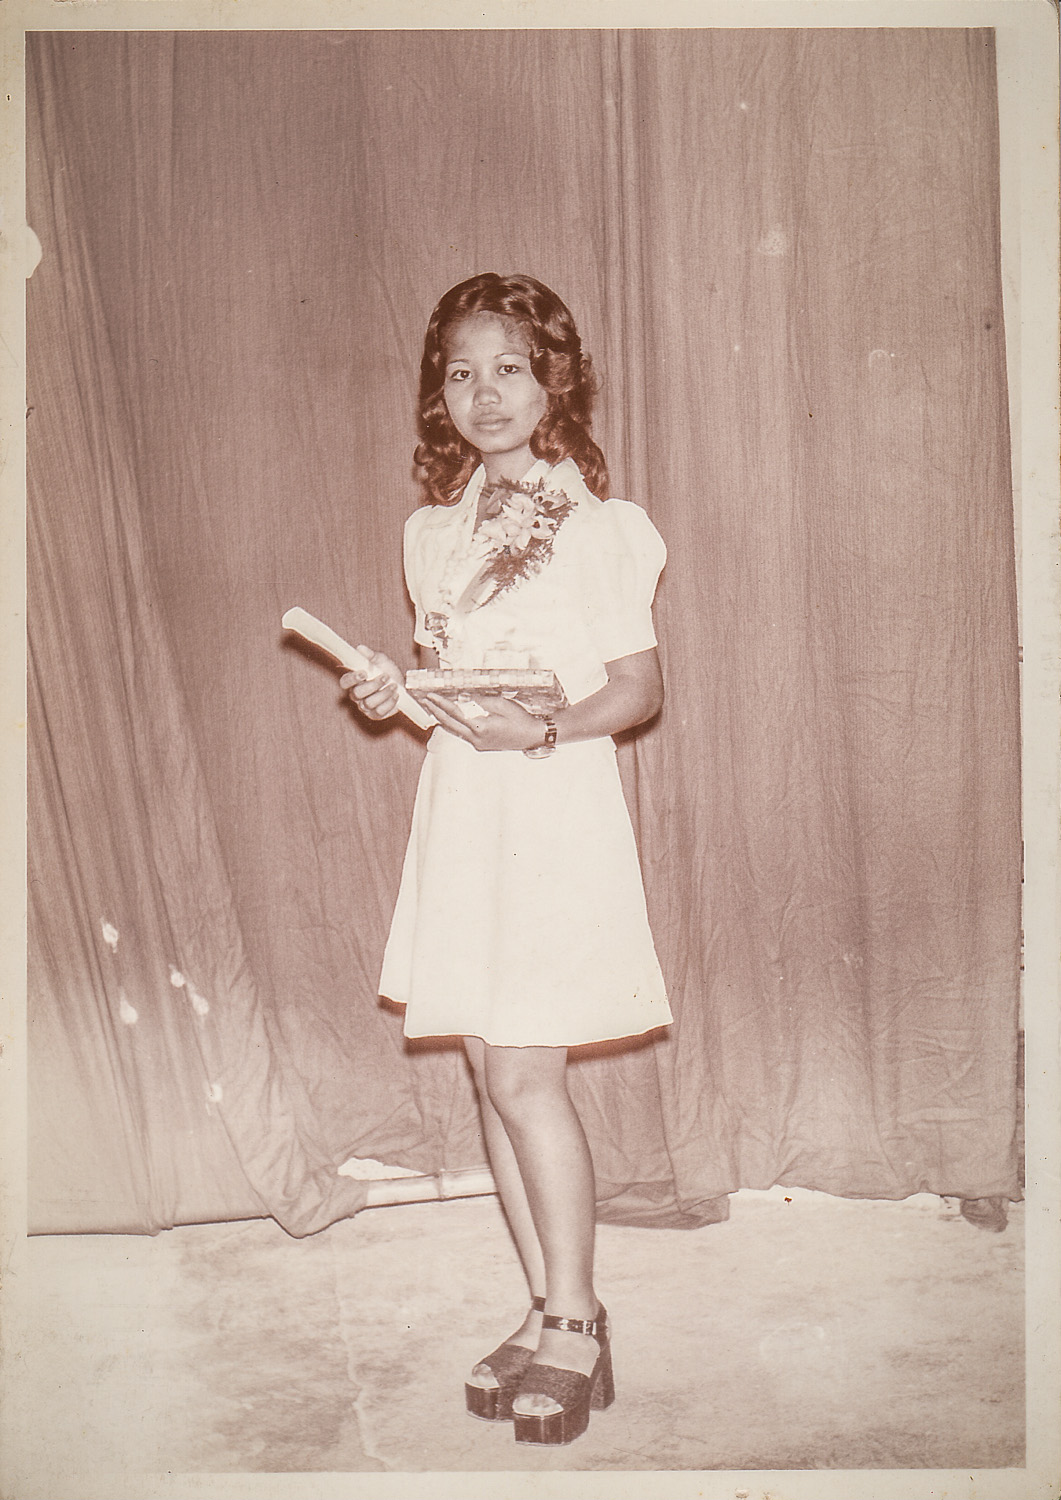 Ate Del graduating from high school. She was probably 16 or 17 yrs old. Those shoes, those killer shoes.